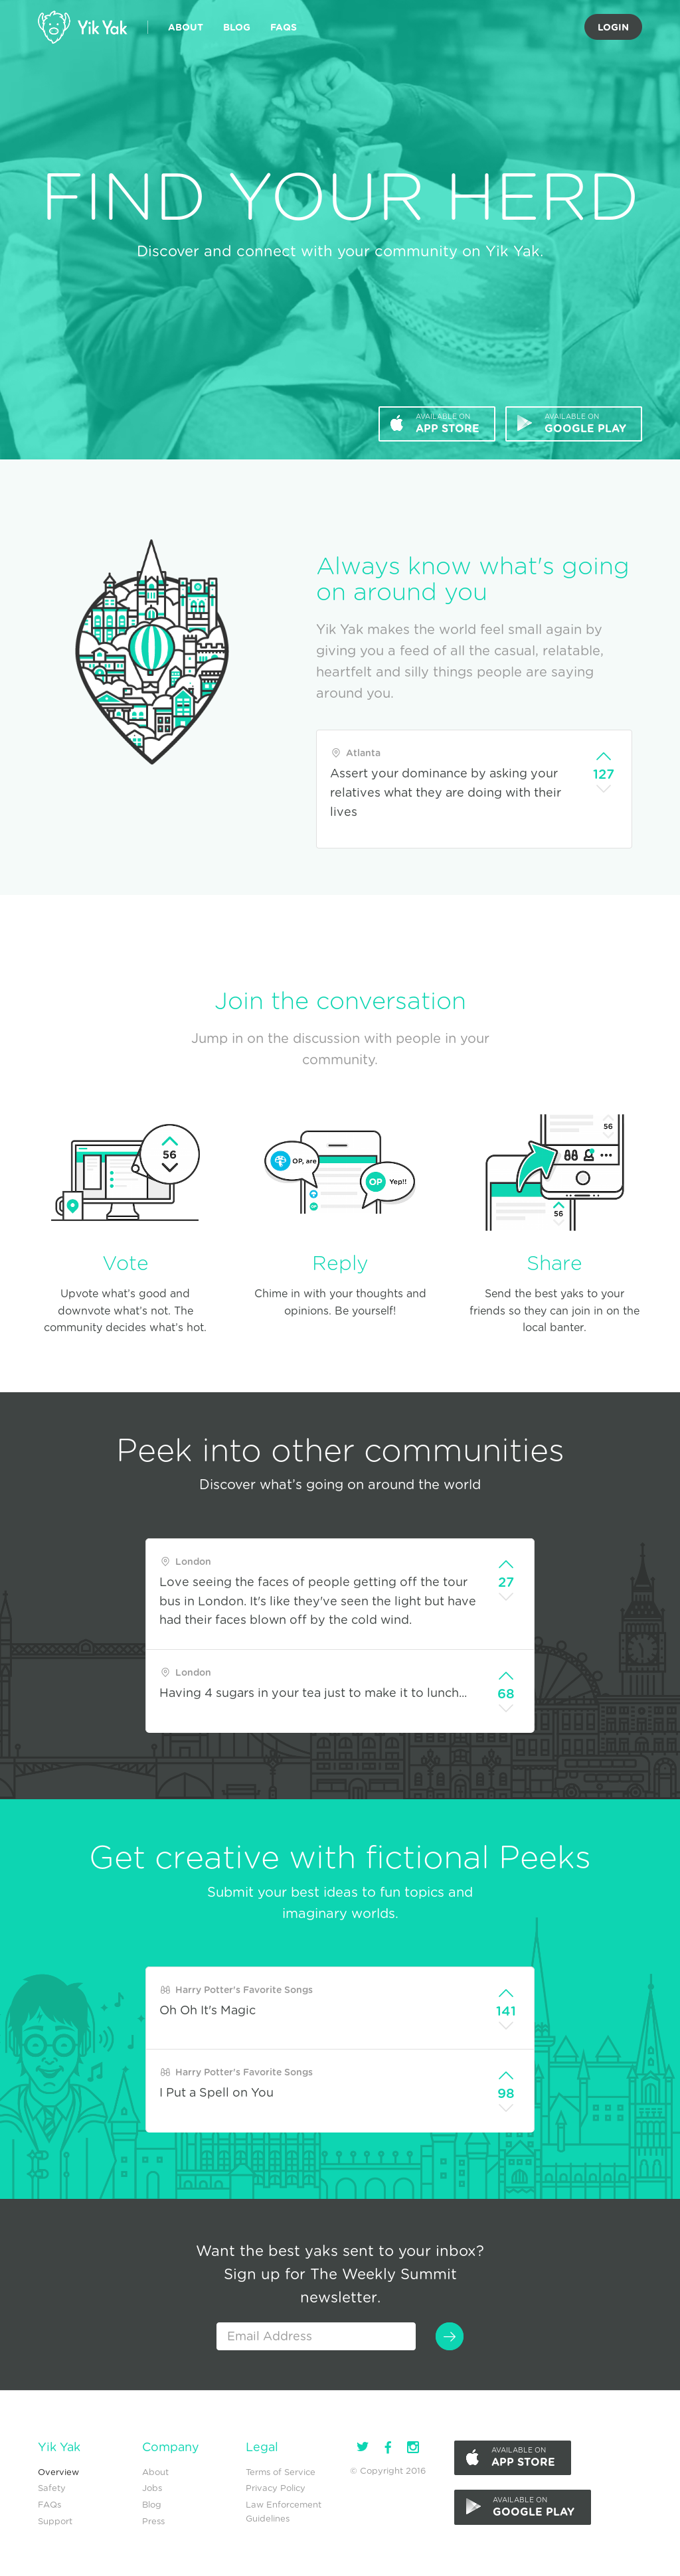 Yikyak Competitors, Revenue and Employees - Owler Company